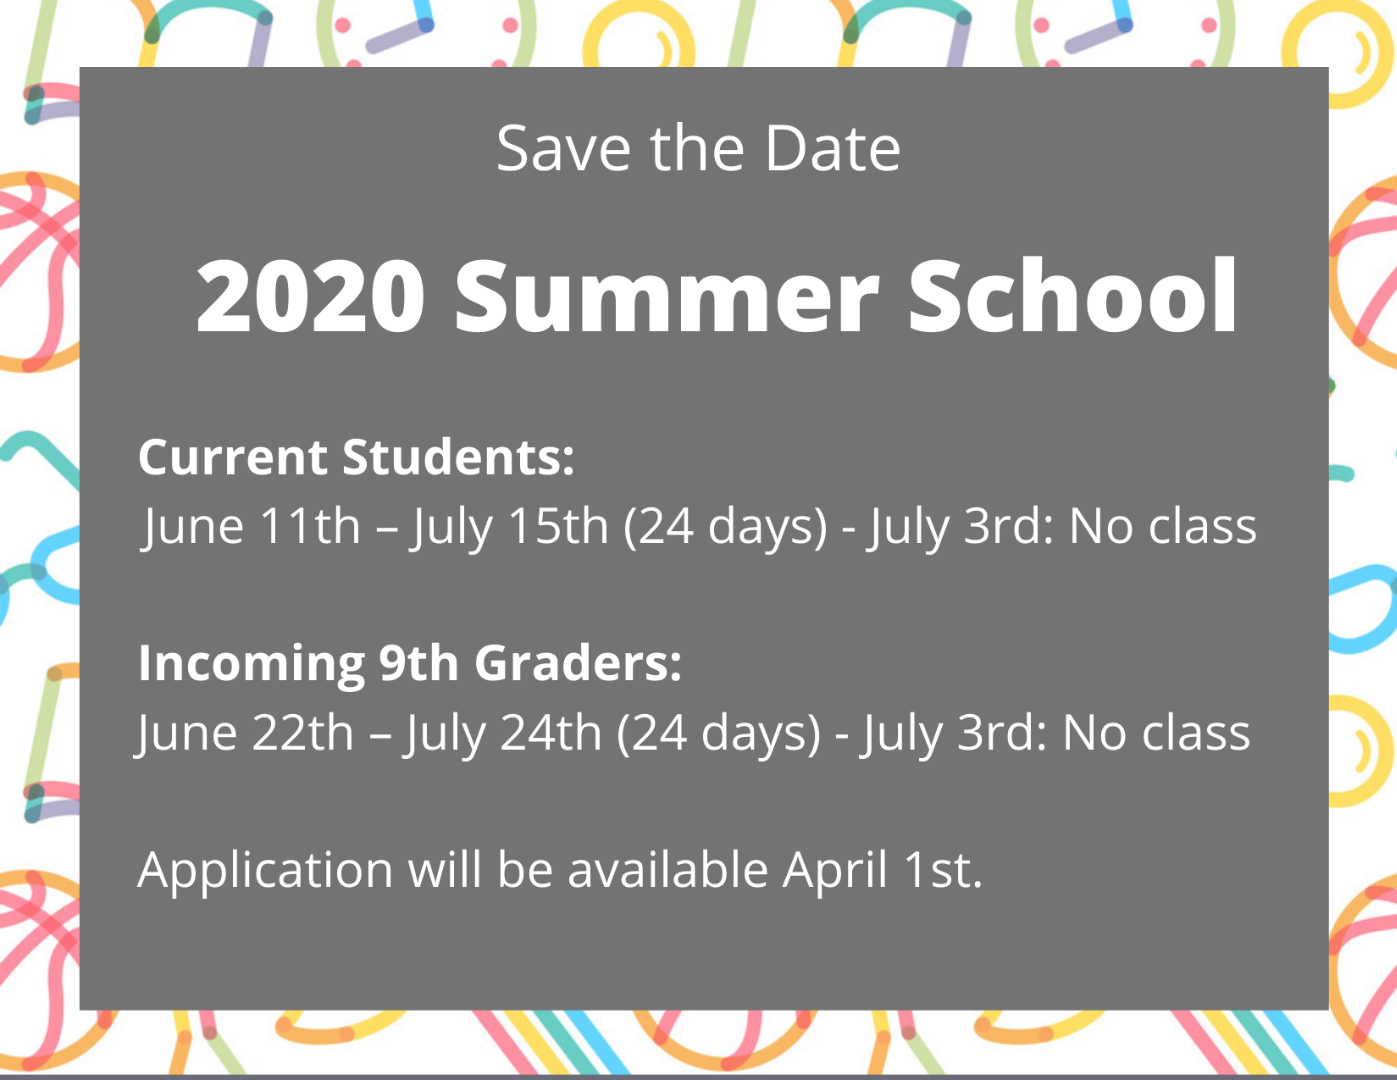 Save the Date Summer School